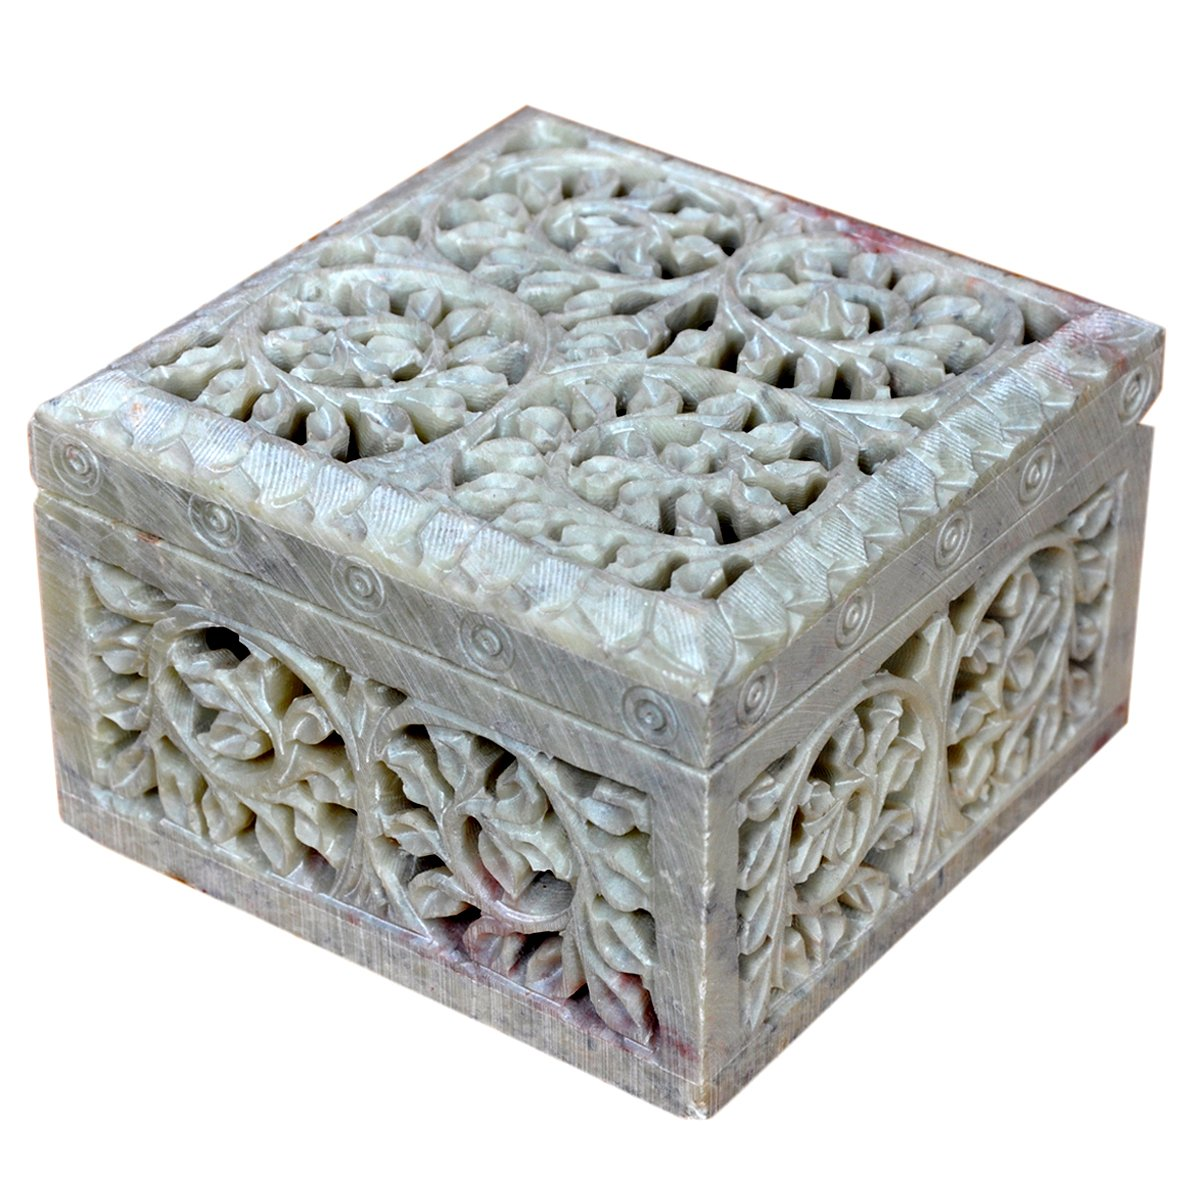 Hashcart Indian Artisan, Handmade & Handcrafted Stone Jewelry Box/Jewelry Storage Organizer/Trinket Jewelry Box/Gift Box with Traditional Design by Hashcart (Image #1)